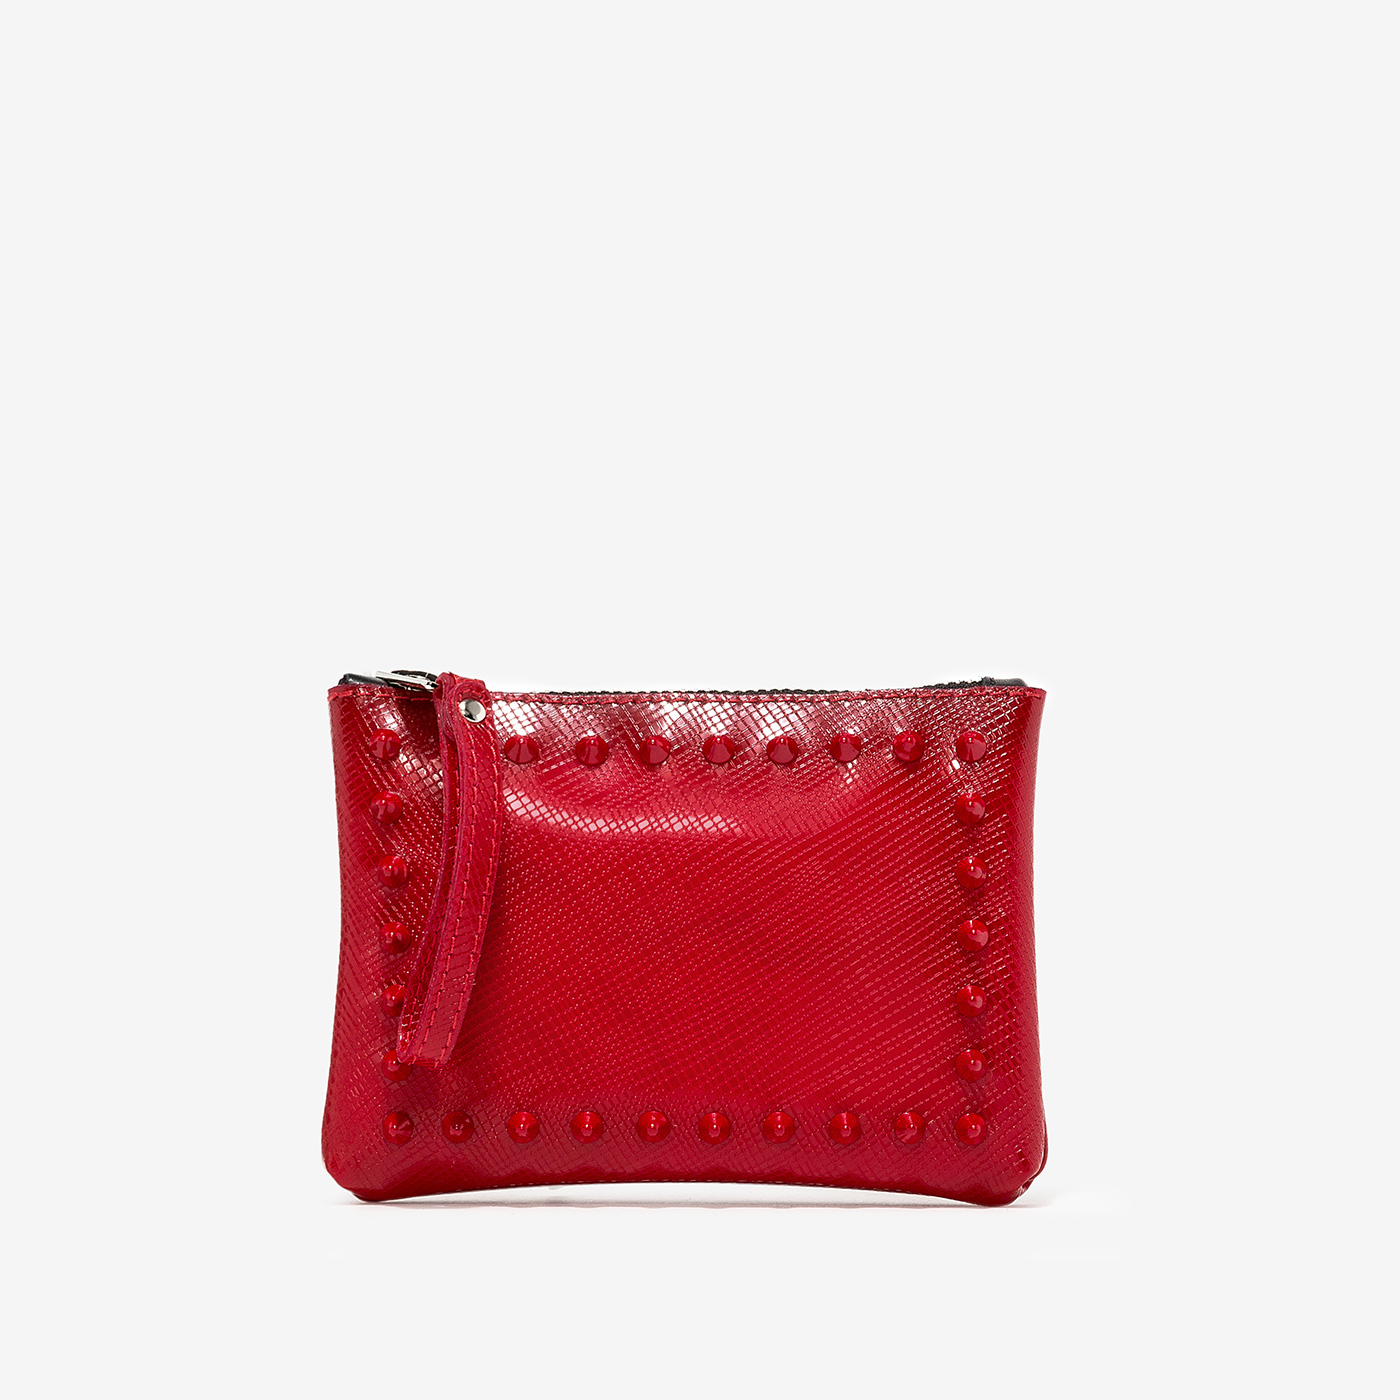 GUM: NUMBERS MINI CLUTCH BAG